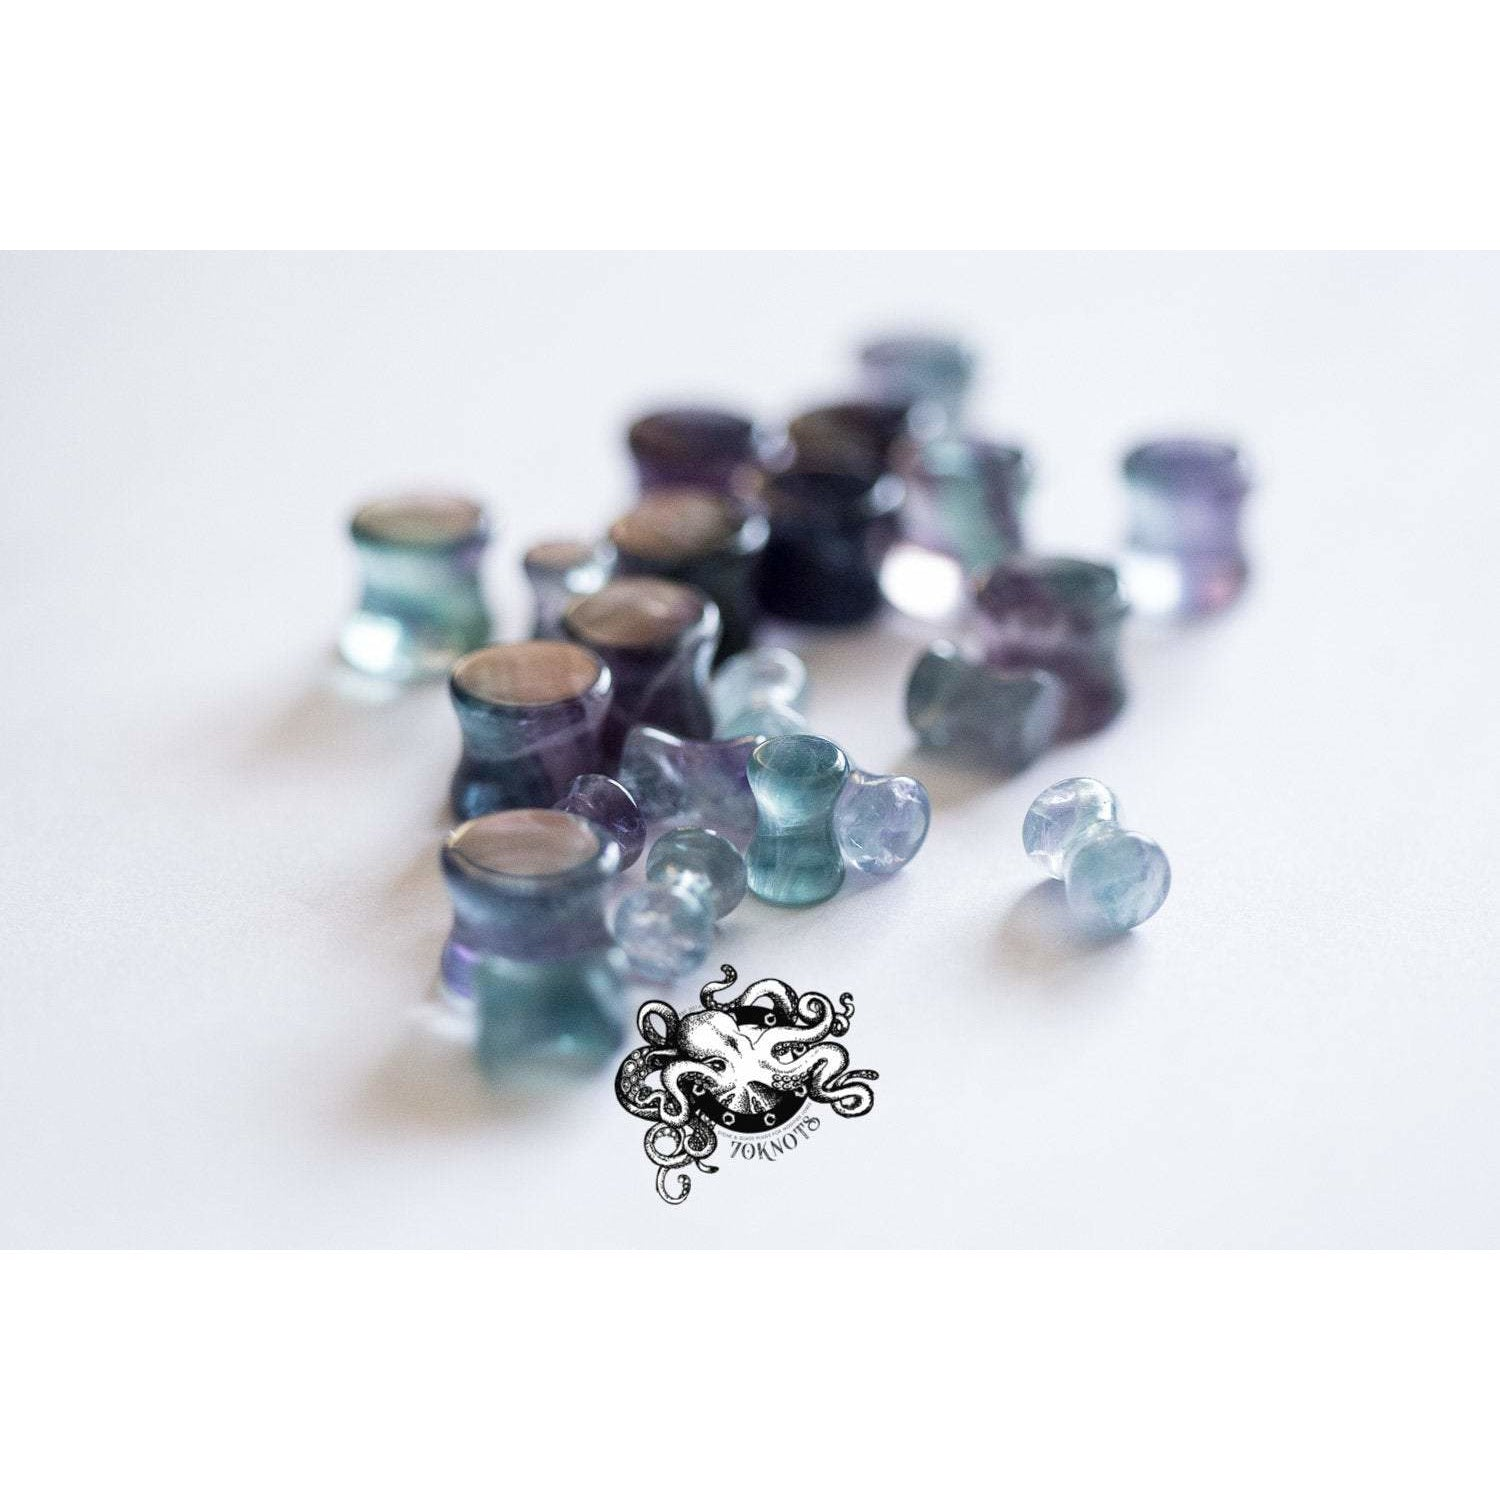 Rainbow Fluorite Double Flared Plugs, Pair - 70 Knots